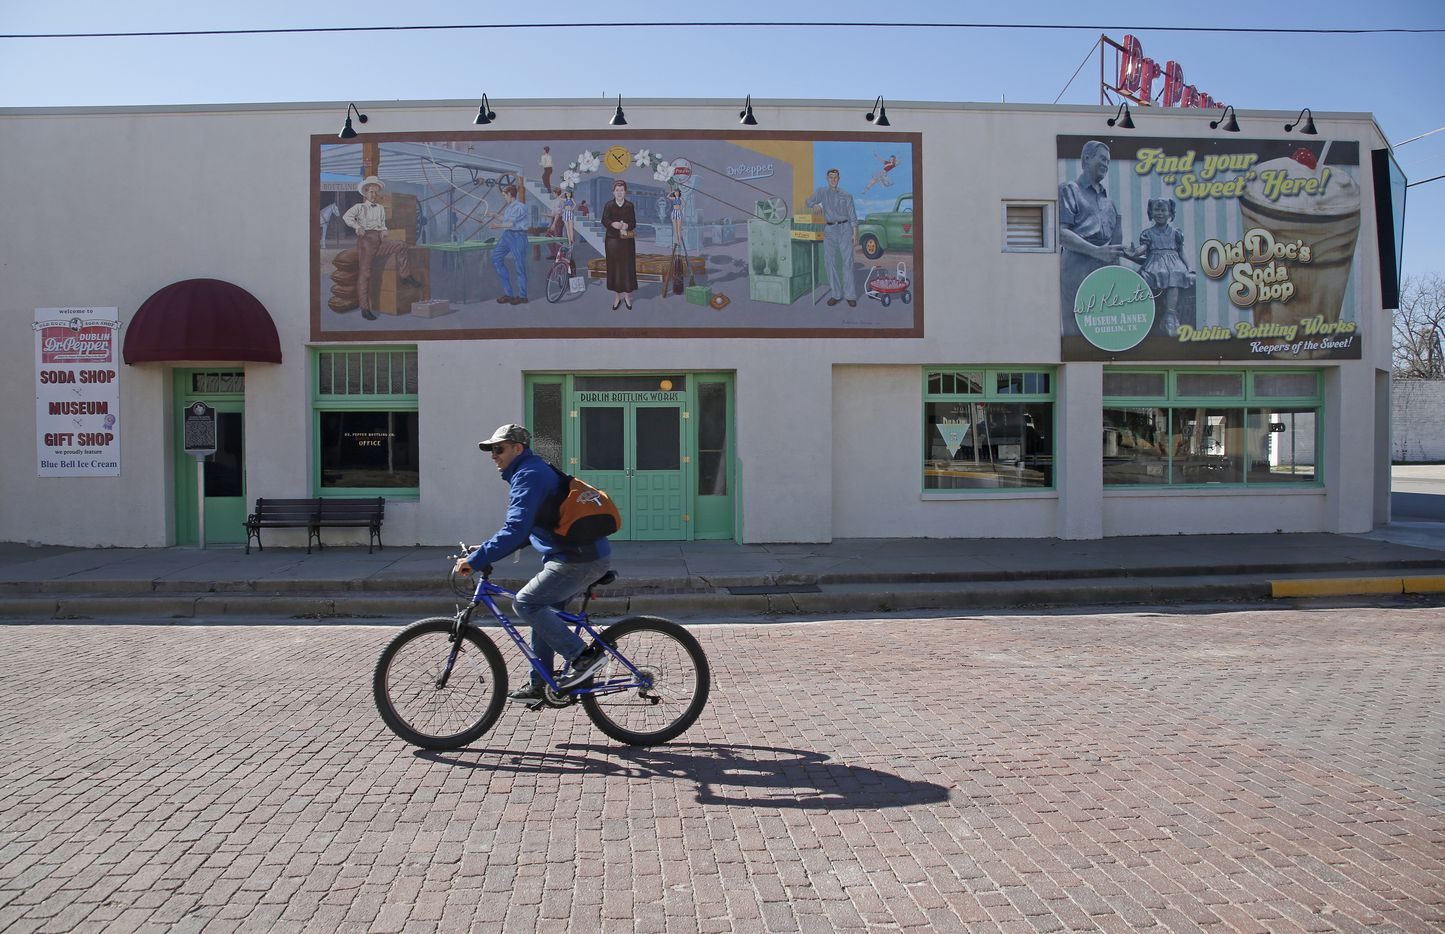 A cyclist passes in front of the Dublin Bottling Works, museum and soda shop in Dublin, Texas Friday Feb. 24, 2017. An old Dr Pepper sign is still on the roof even though it's no longer bottled there. (Guy Reynolds/The Dallas Morning News)